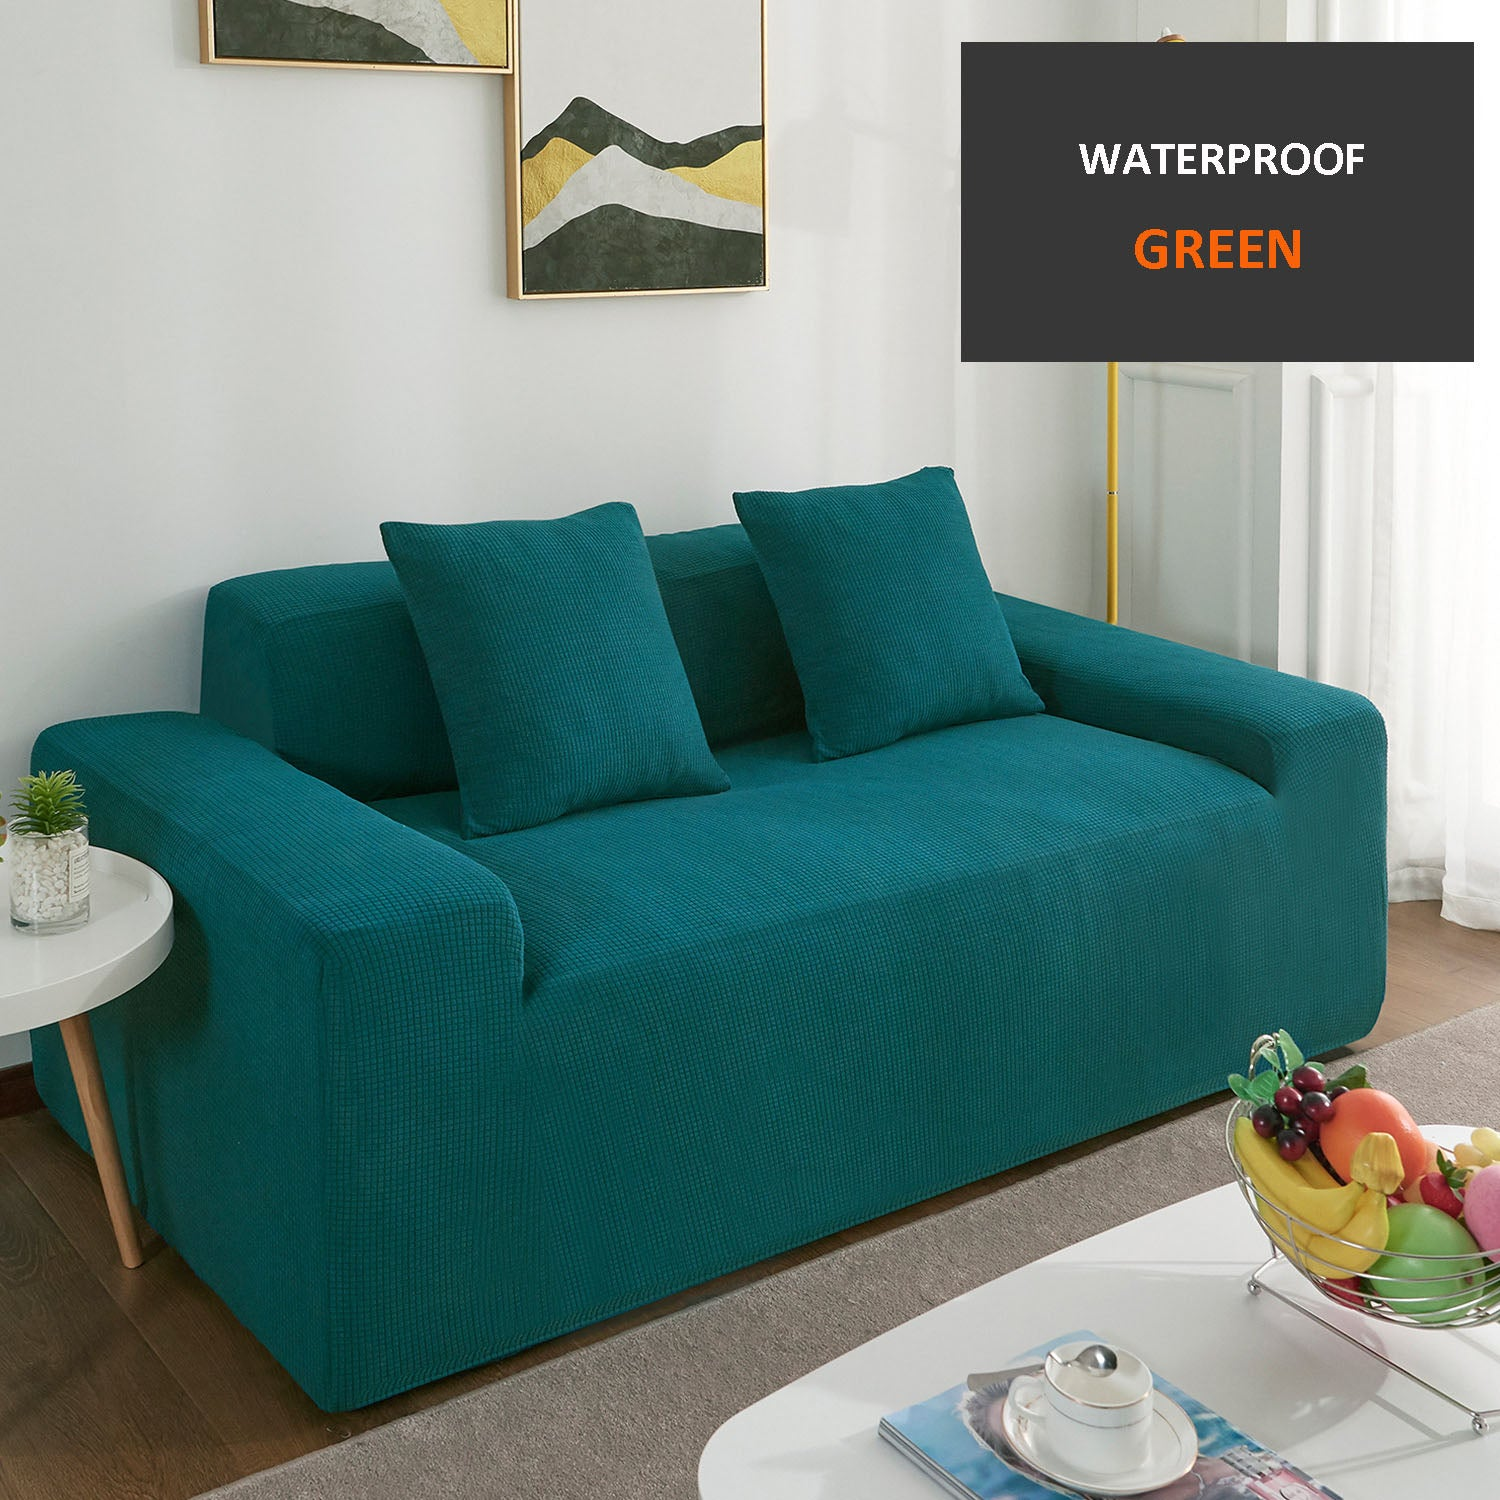 FREE SHIPPING)High Quality Waterproof Sofa Cover – fincylook.com